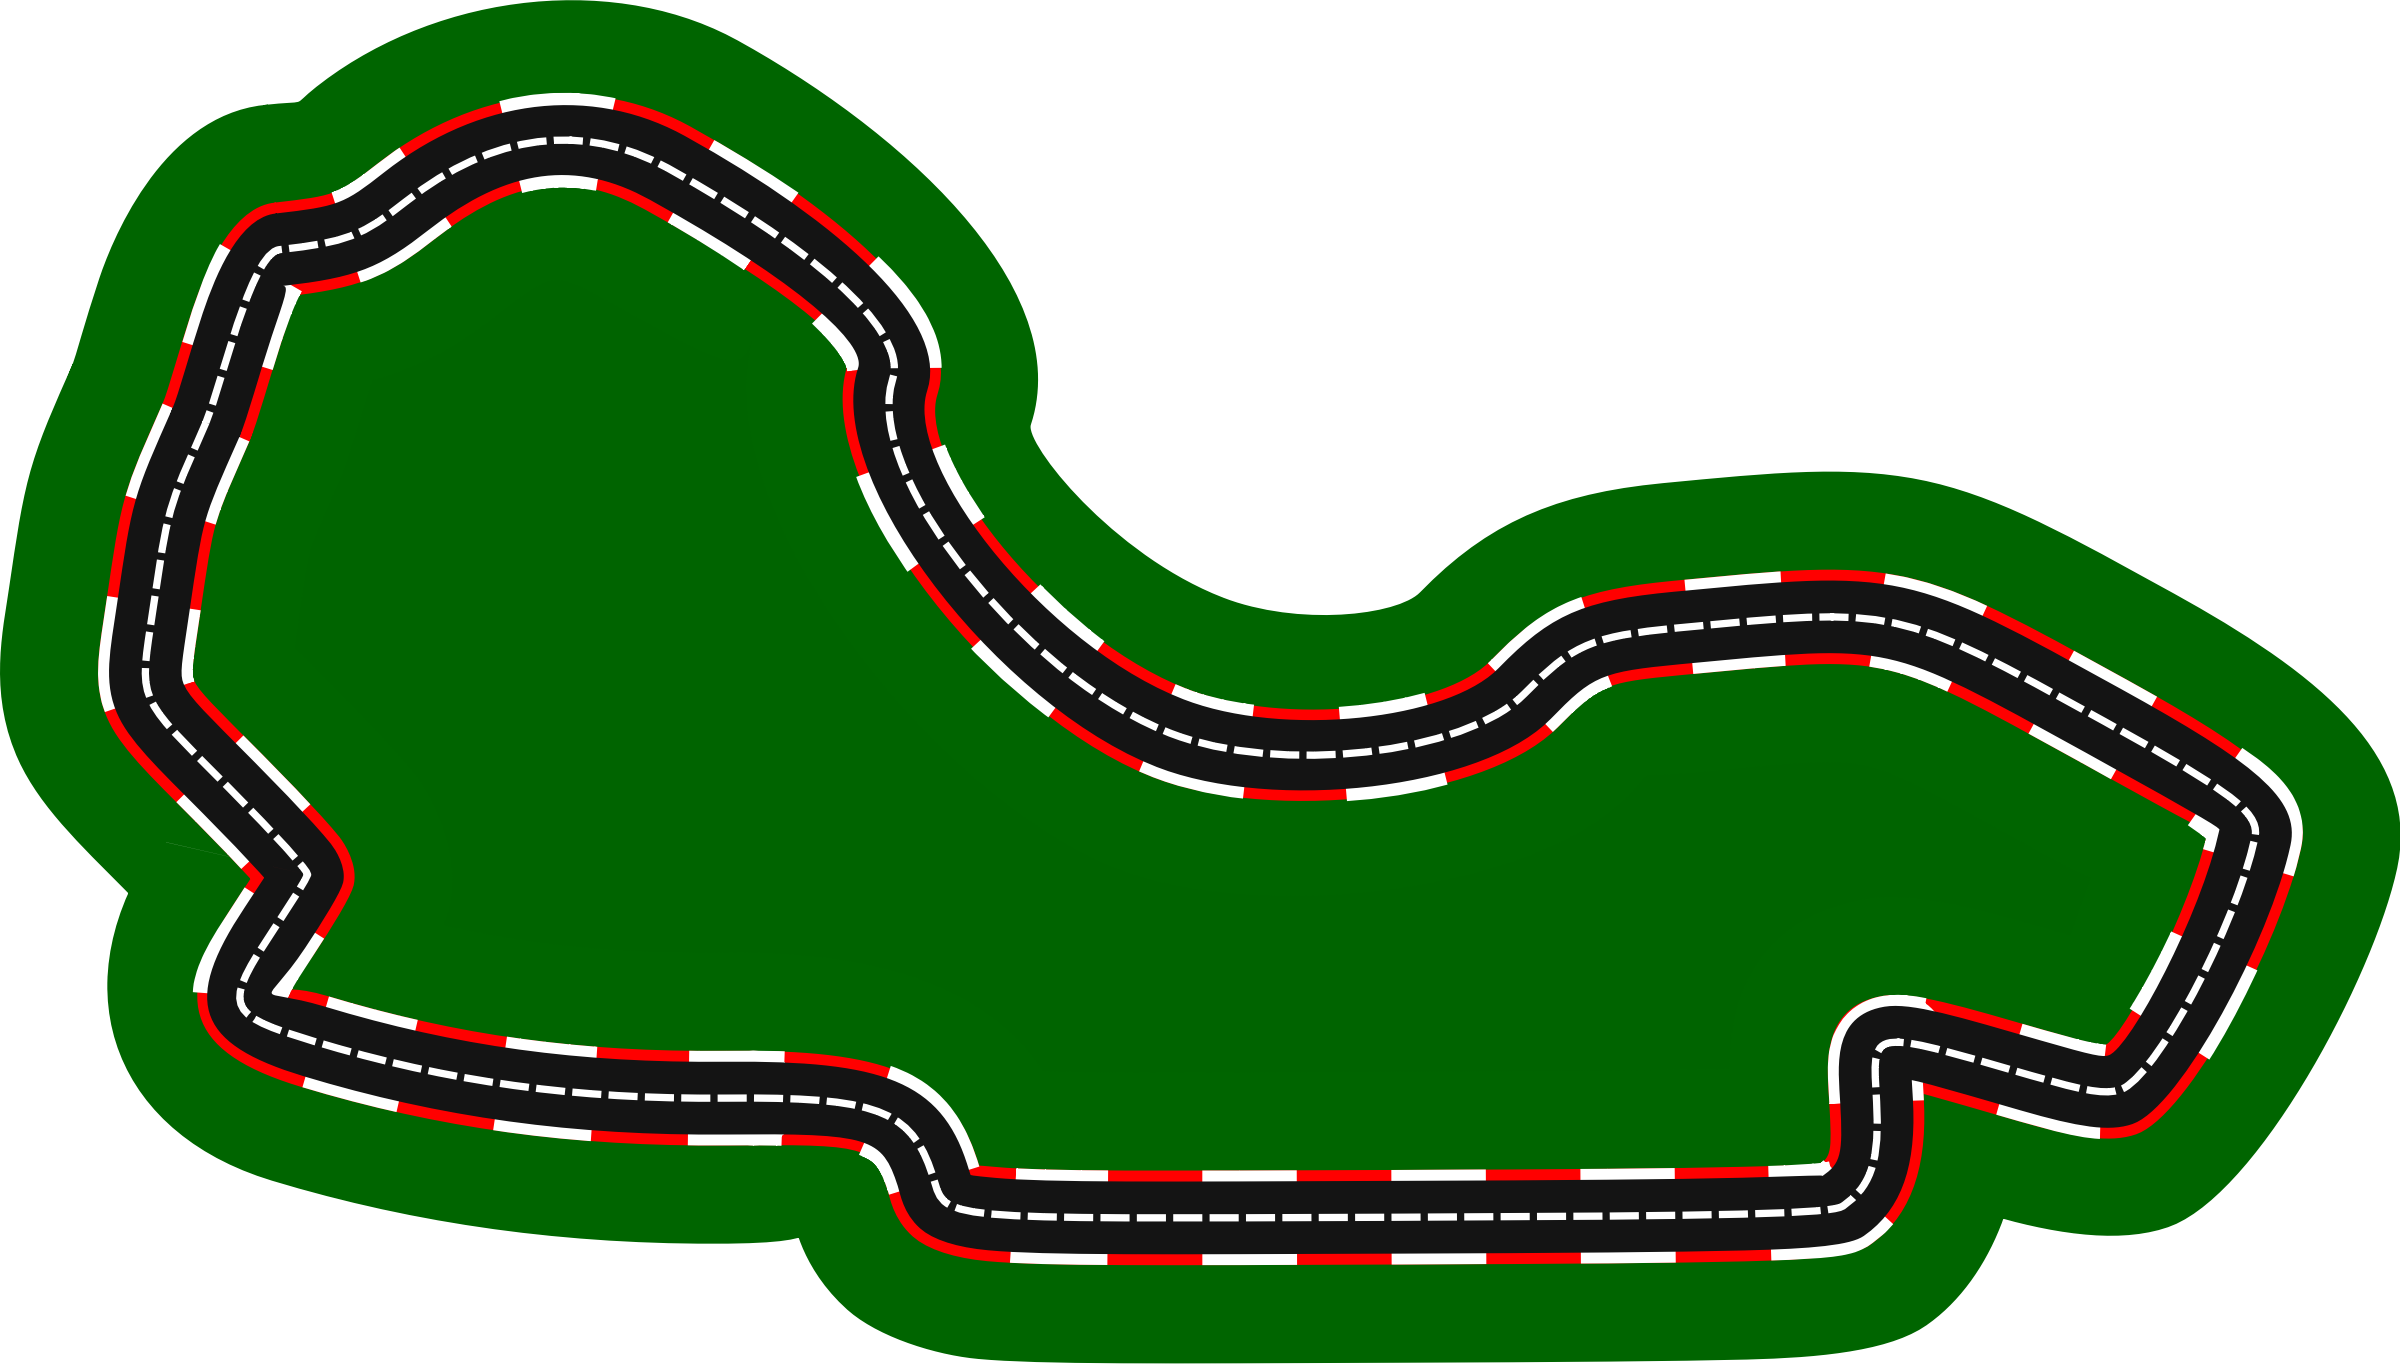 F1 circuits 2014-2018 - Melbourne Grand Prix Circuit (version 2) by Firkin